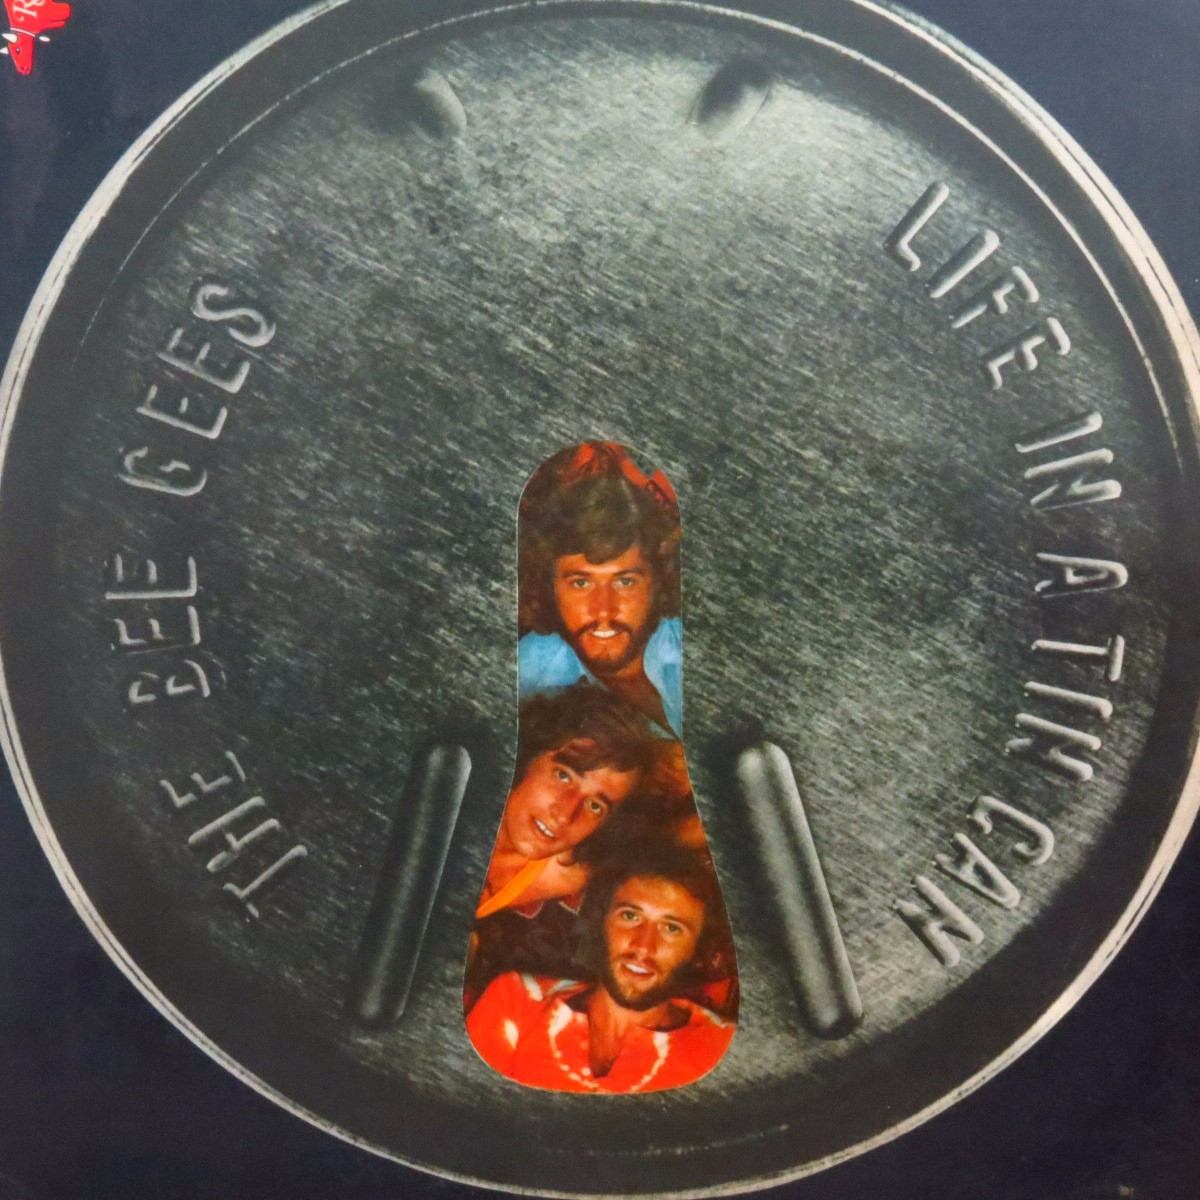 The Bee Gees - Life In a Tin Can